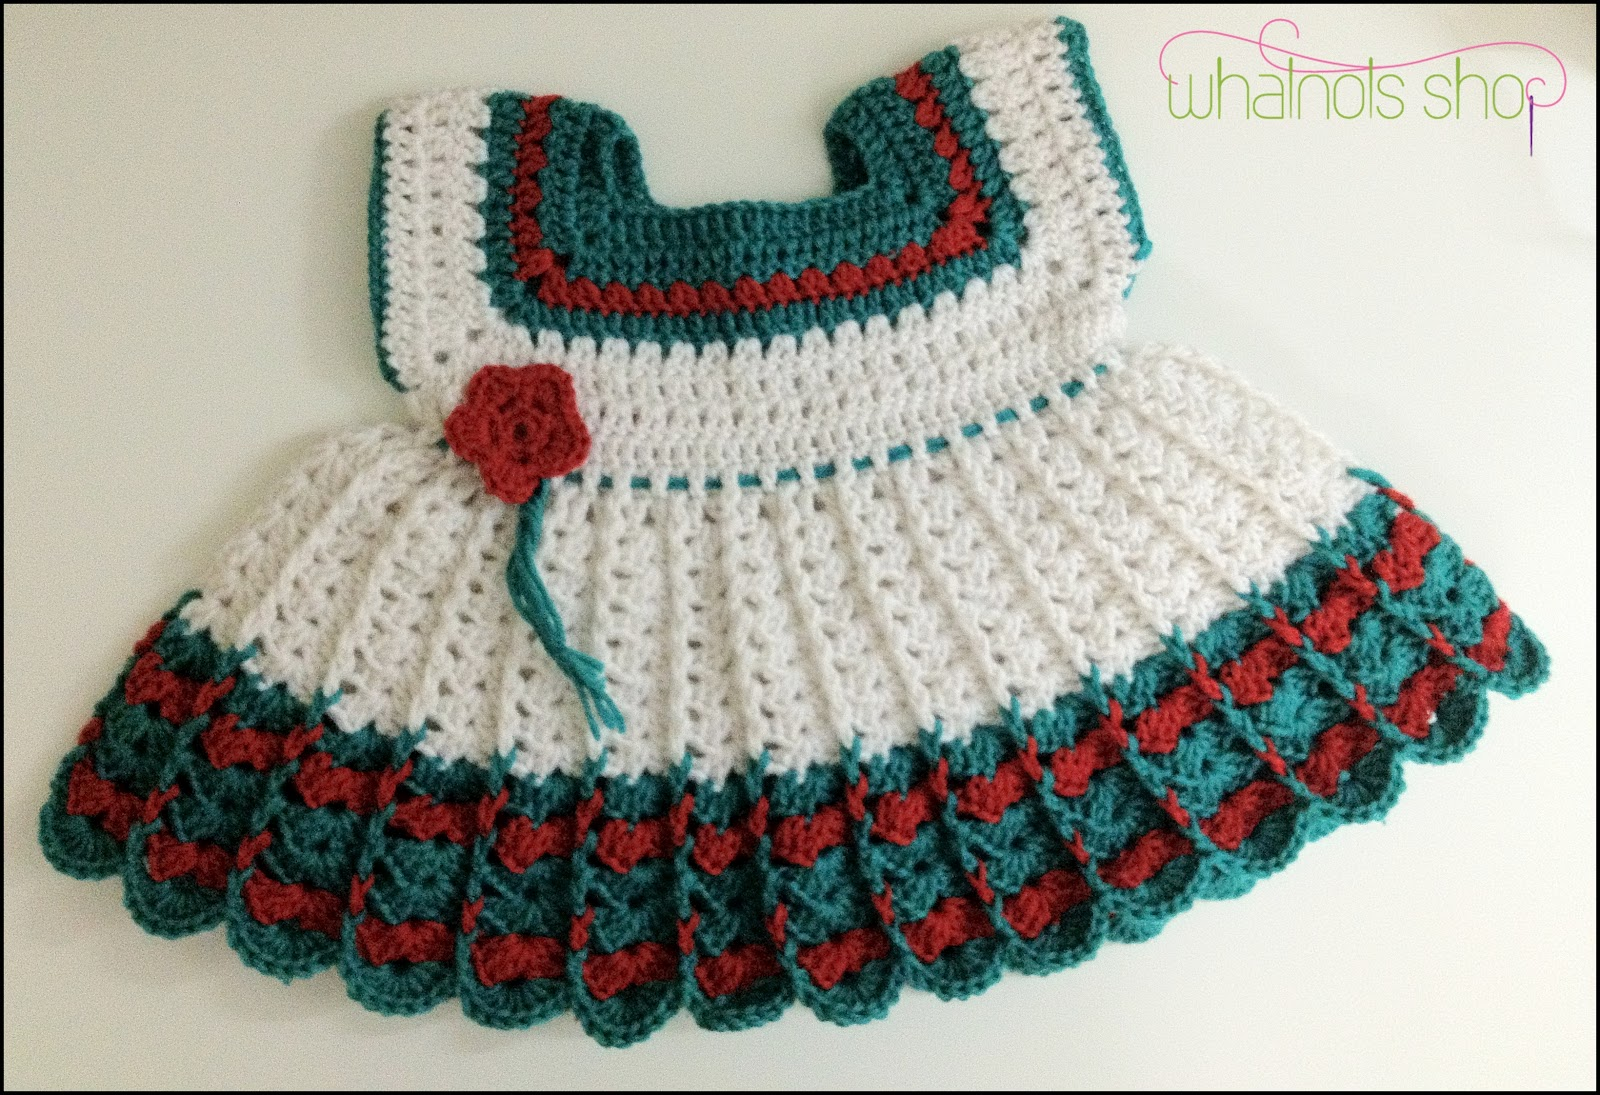 Baby Girls Frocks http://the-whatnots-shop.blogspot.com/2012/06/baby-girls-frock.html